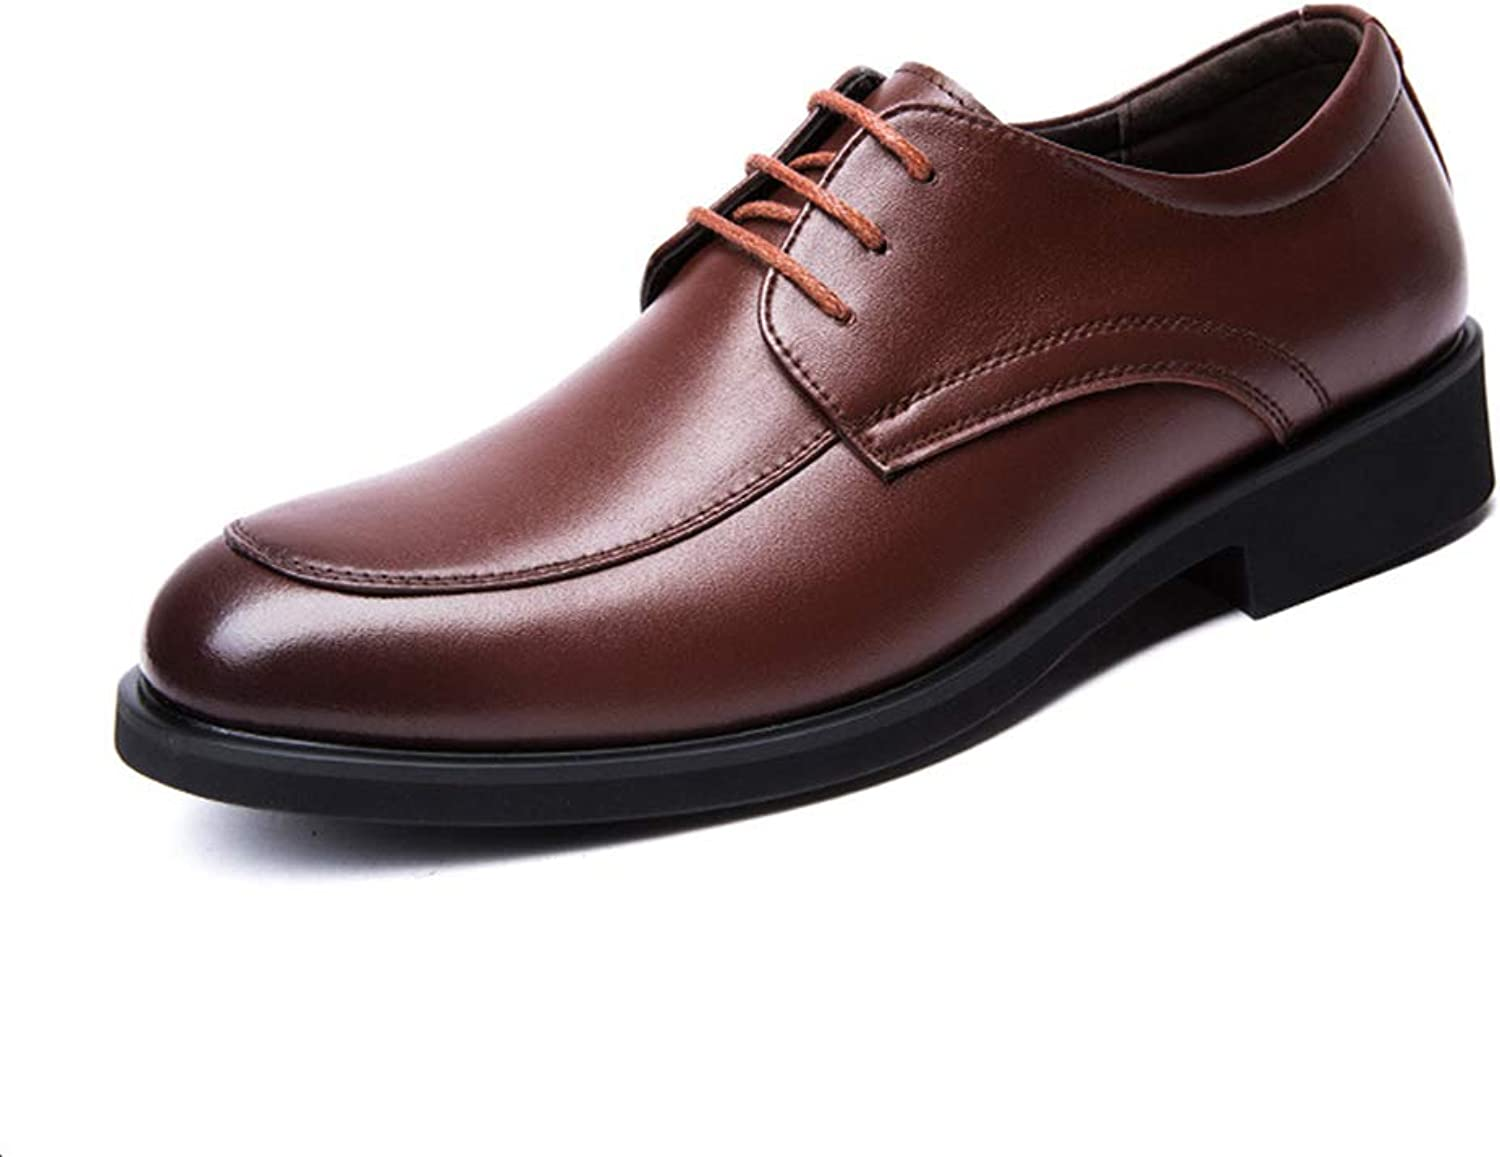 Men's shoes 2018 Spring Fall New Leather shoes Formal Business shoes Casual Wedding Prom Dress shoes,Brown,42